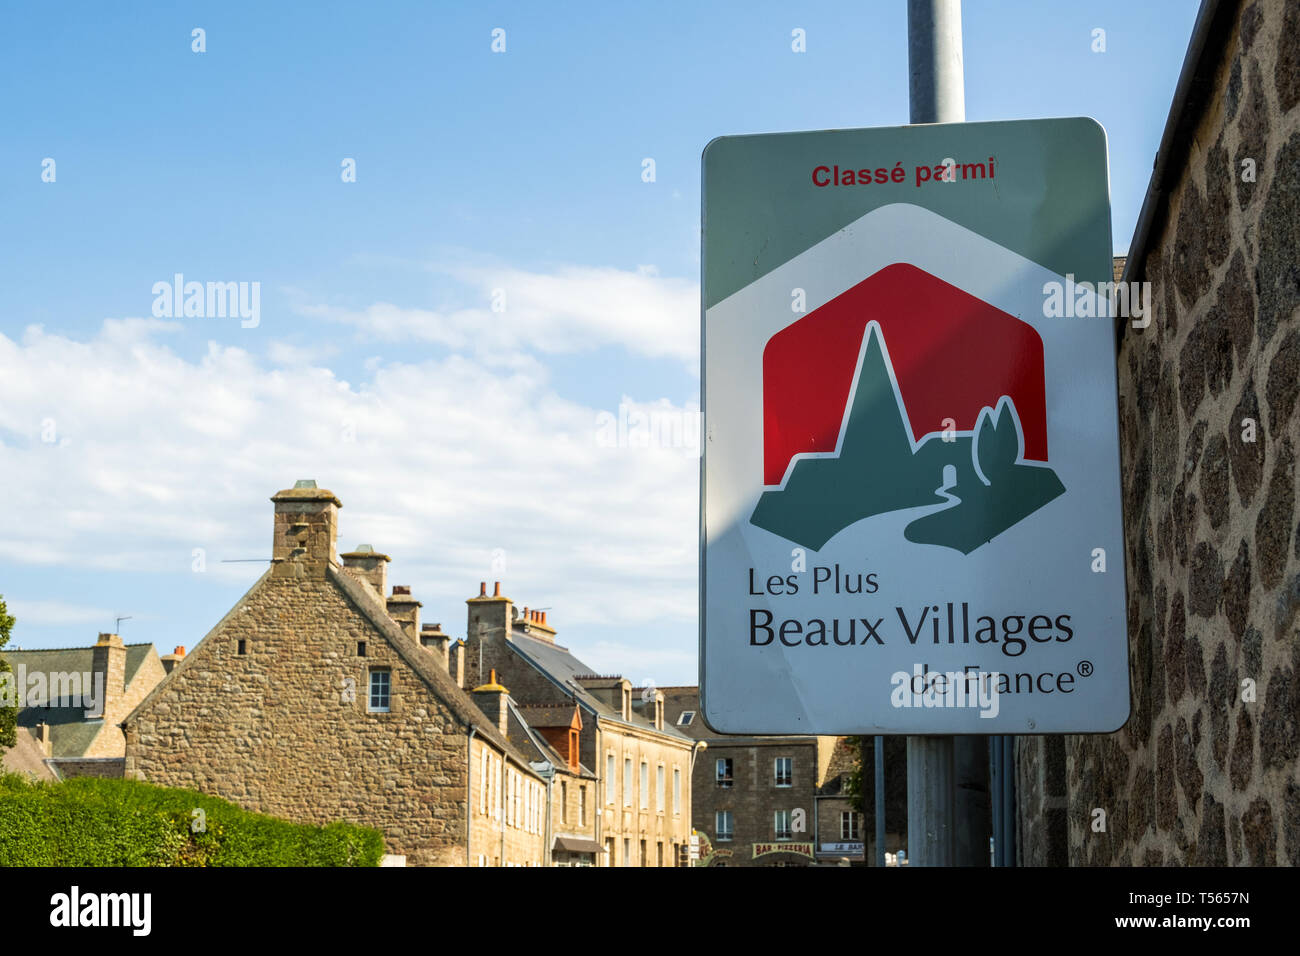 Barfleur, France - August 29, 2018: The sign indicates that Barfleur is Ranked among the most beautiful villages in France. - Stock Image